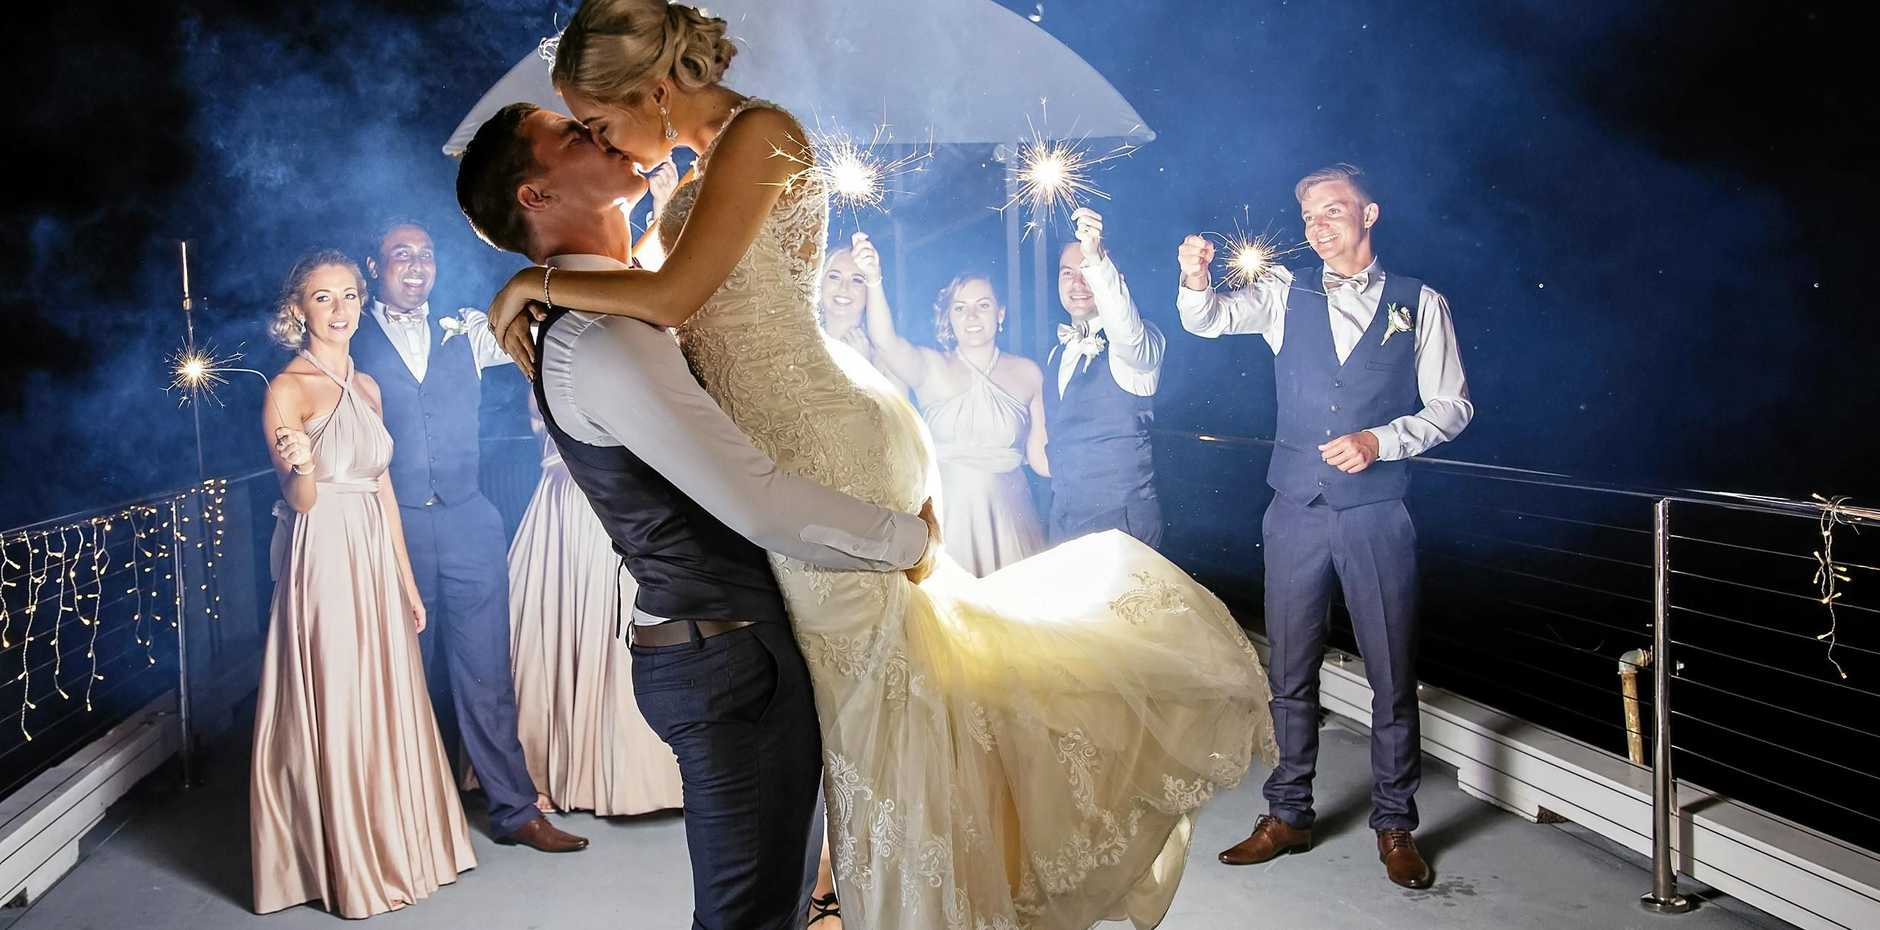 TOGETHER FOREVER: Emily and Philipp Helfersdorfer on their wedding day.